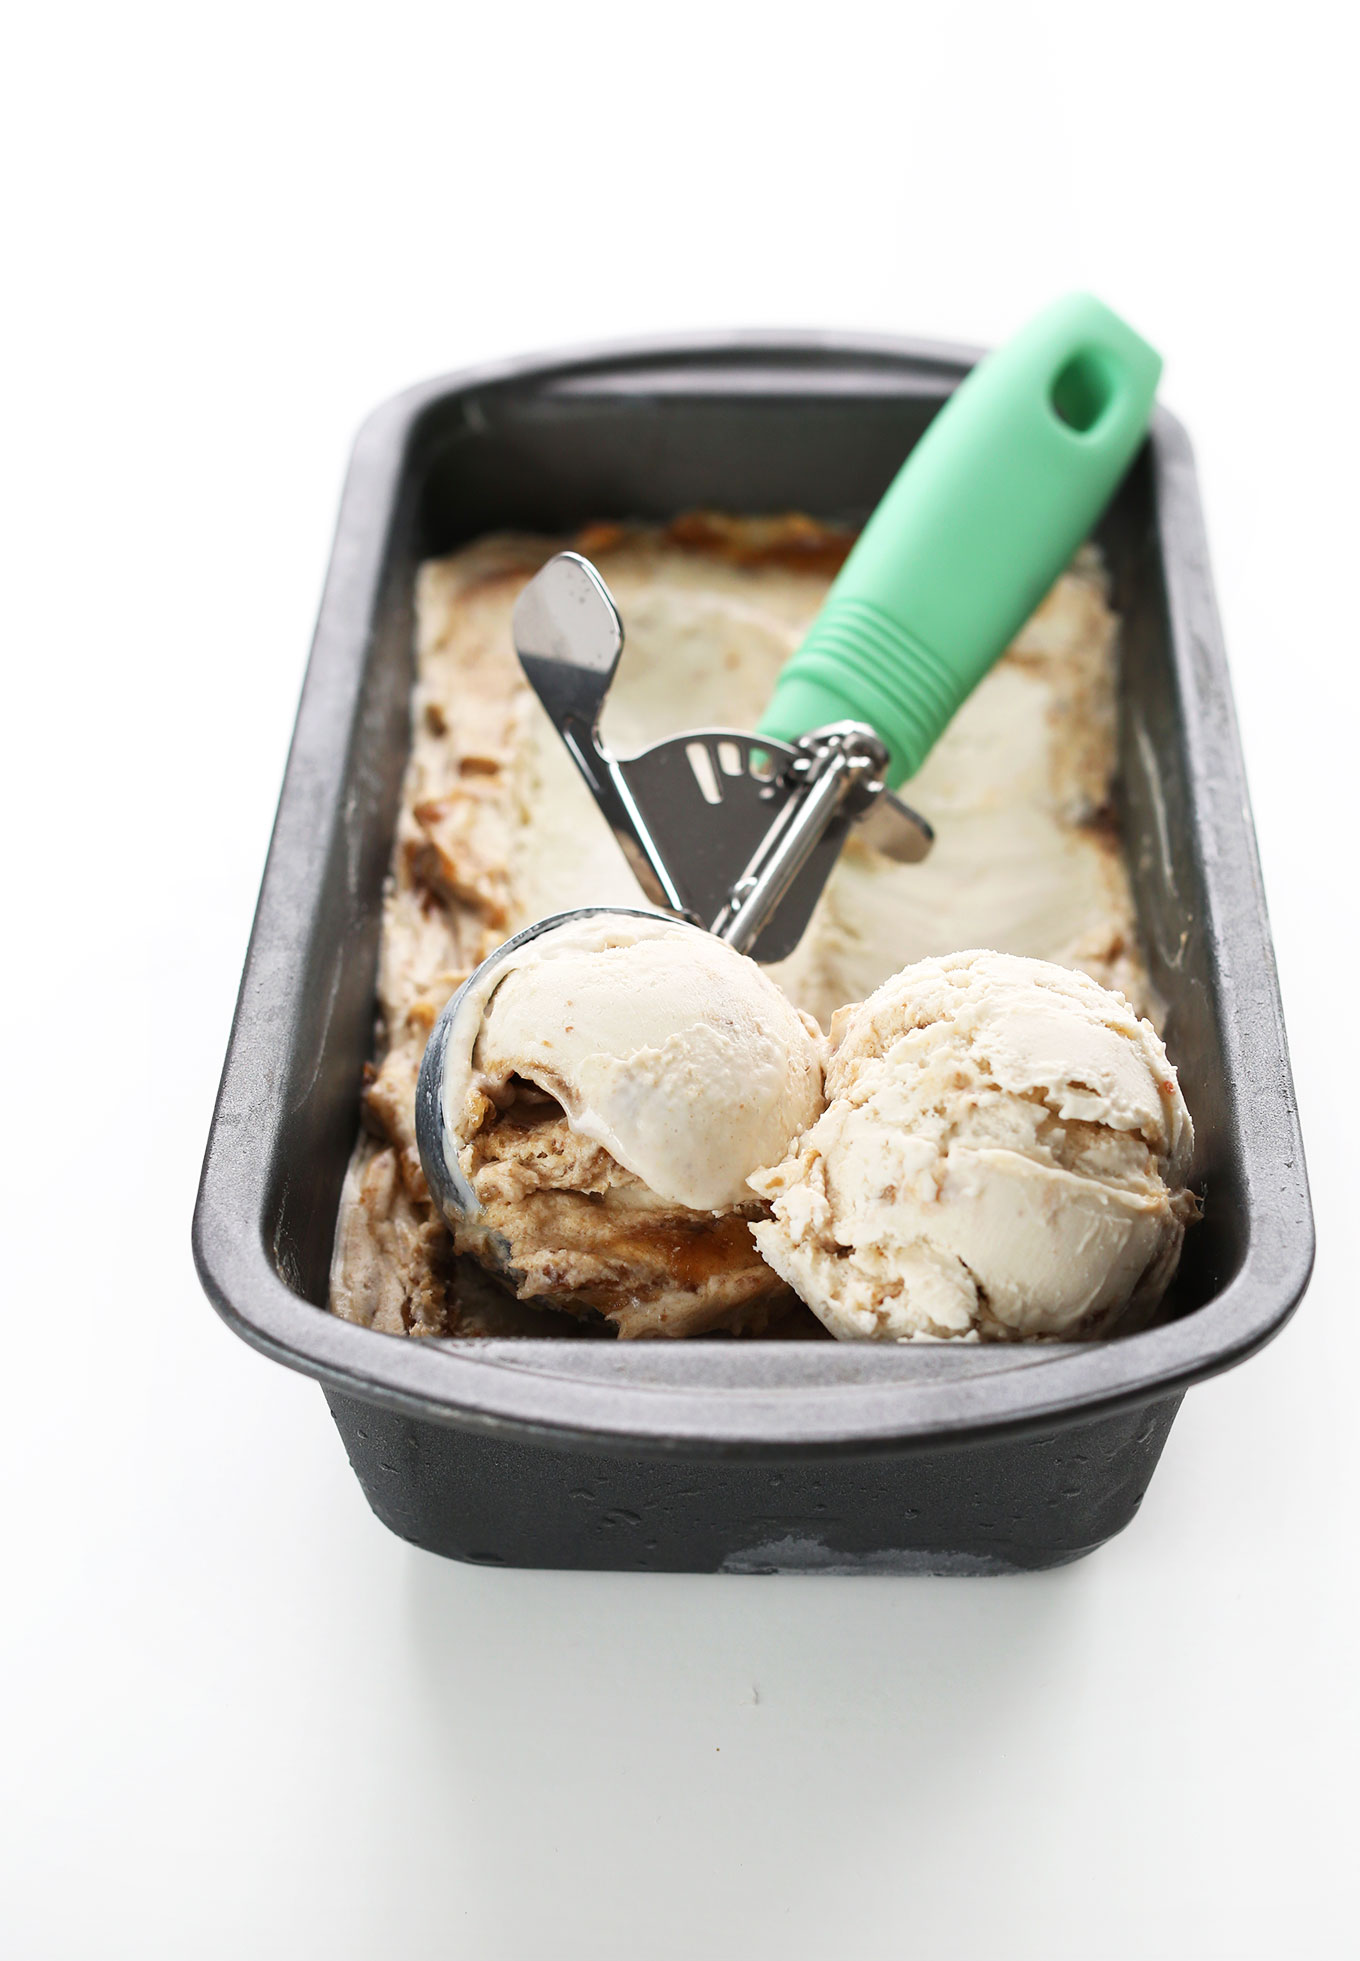 Pan of our Sea Salt Caramel Coconut Ice Cream for an incredible vegan dessert